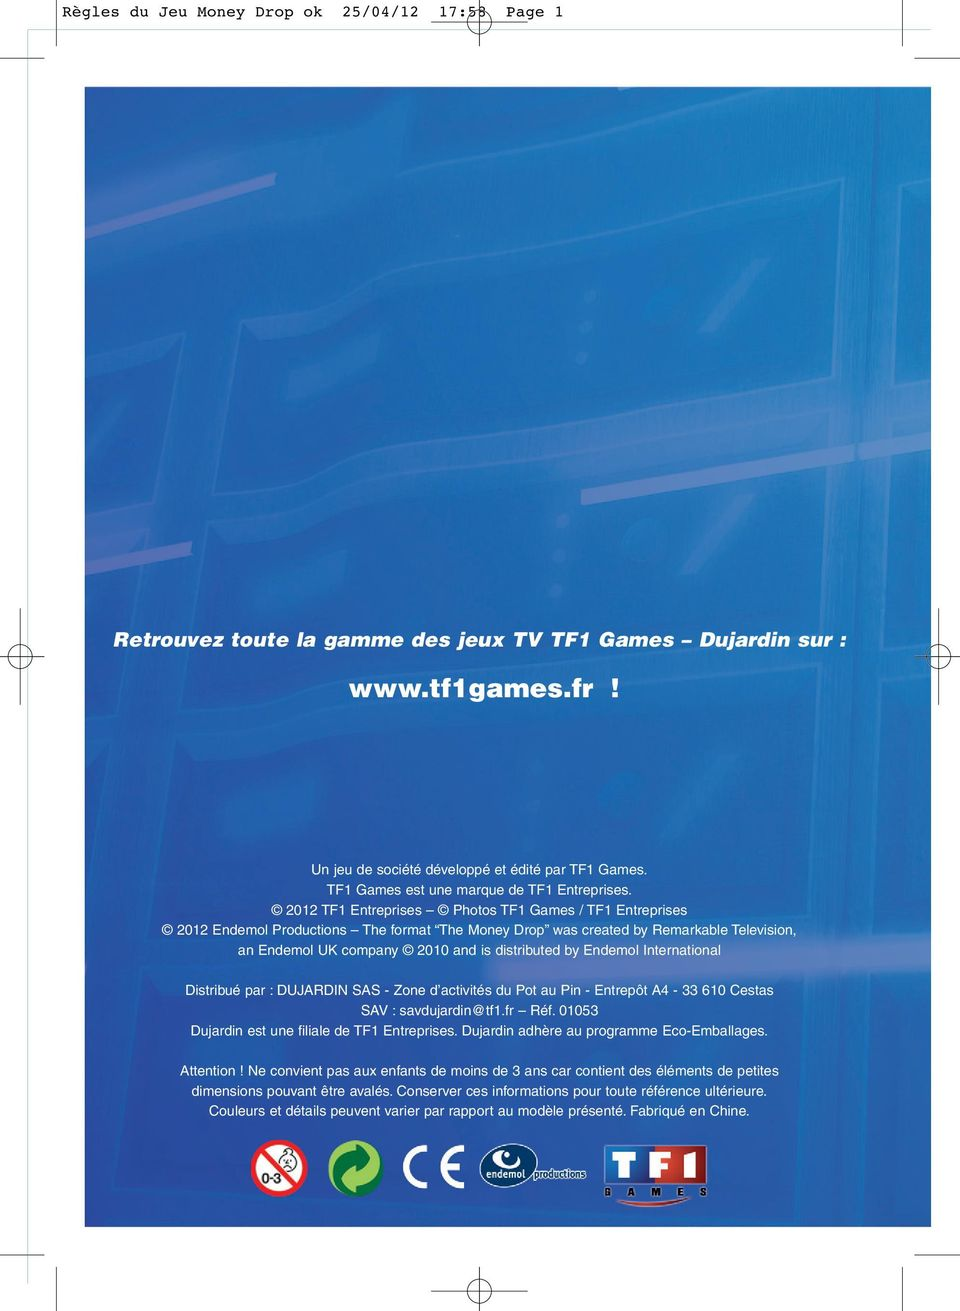 R gles du jeu money drop ok 25 04 12 17 58 page 2 pdf for Dujardin sas